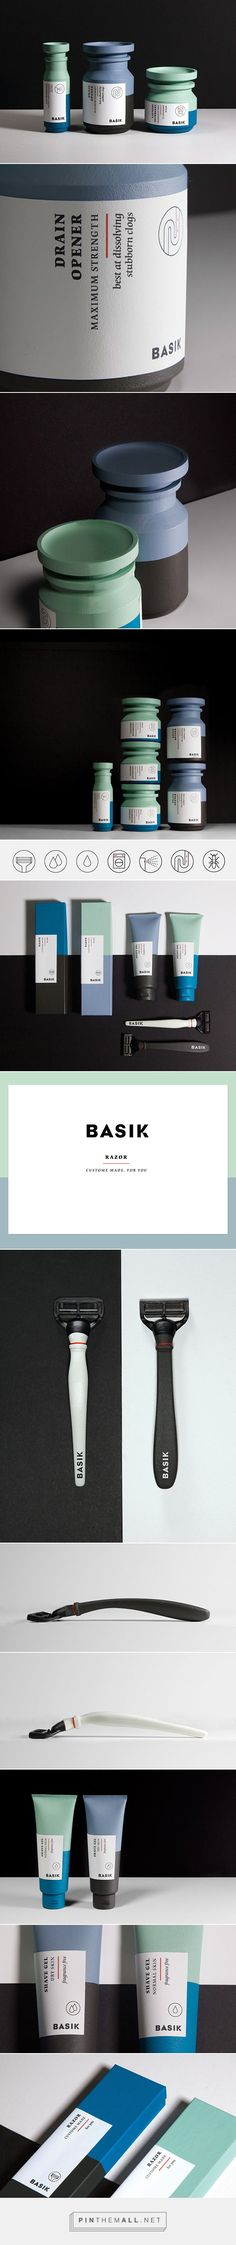 BASIK packaging designed by Saana Hellsten with gender neutral themes in mind… Bottle Packaging, Cosmetic Packaging, Beauty Packaging, Brand Packaging, Graphic Design Branding, Label Design, Package Design, Packaging Inspiration, Web Design